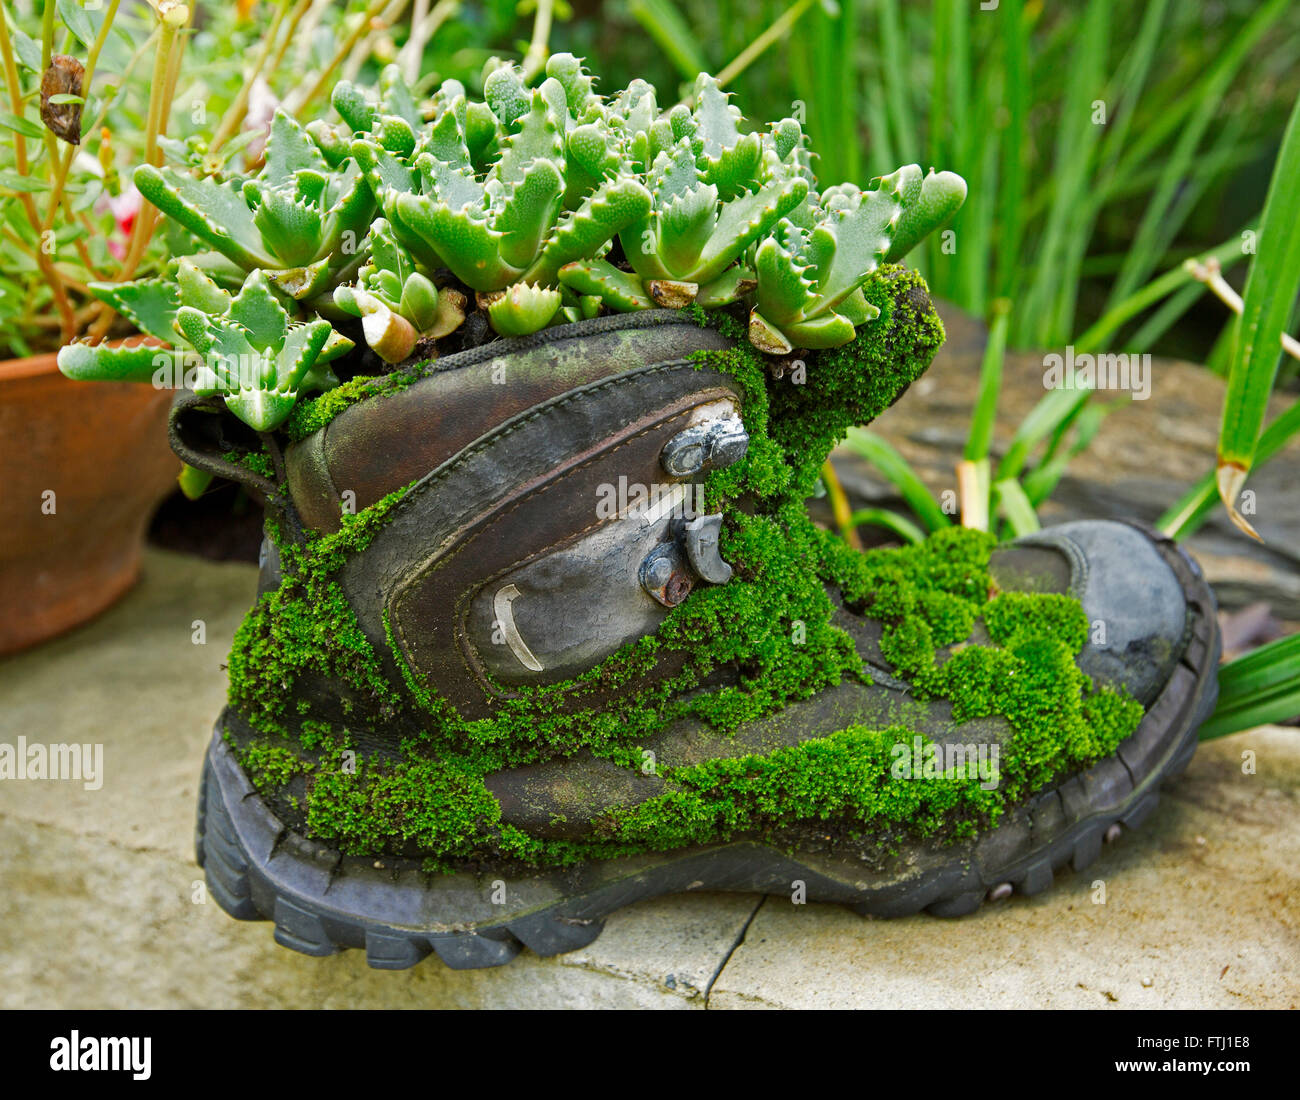 Unusual Plant Container Recycled Old Leather Boot Covered